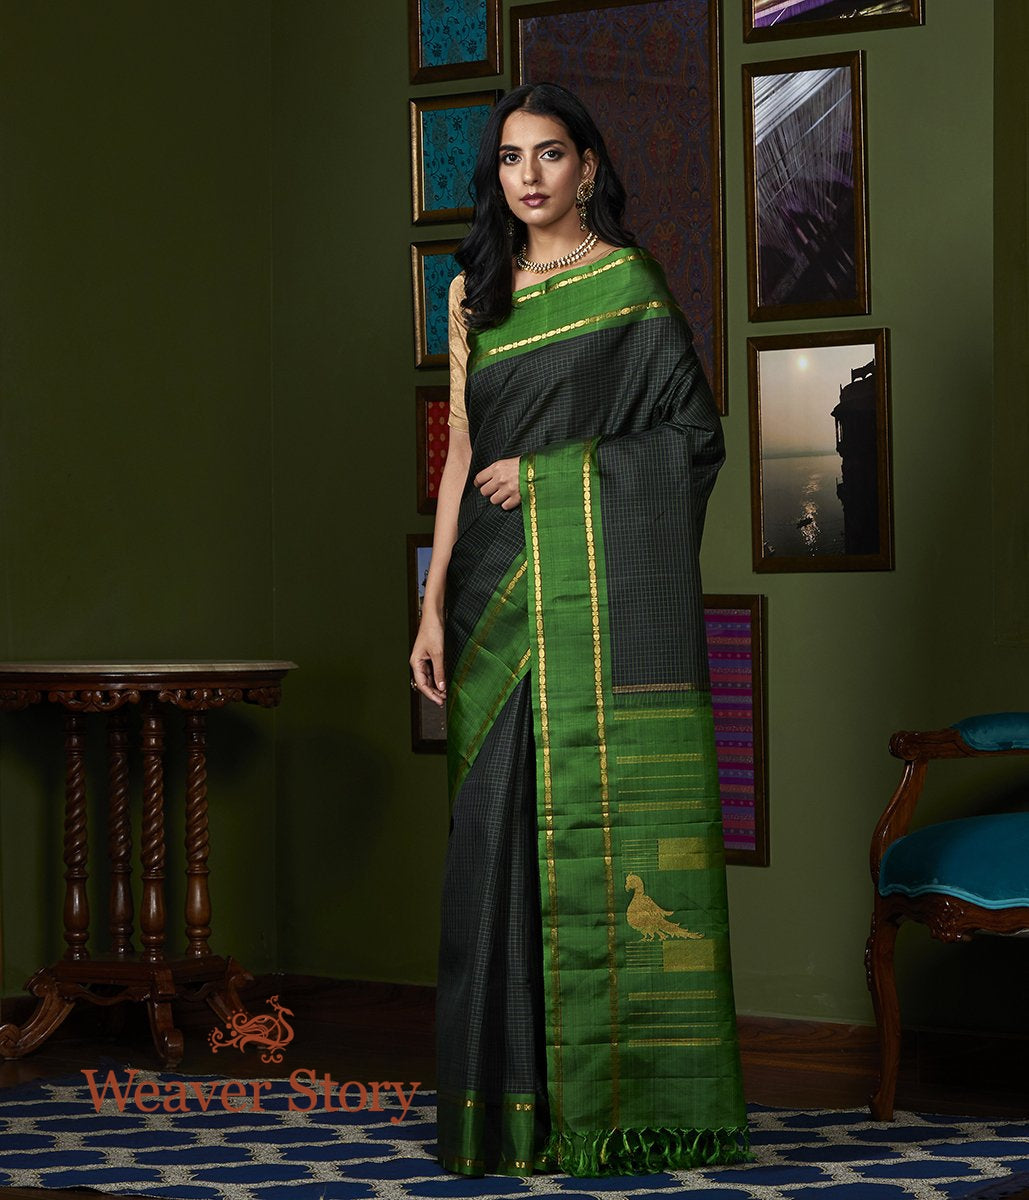 Handwoven Black Kanjivaram Silk Saree with Checks and Green Border and Pallu with Parrots